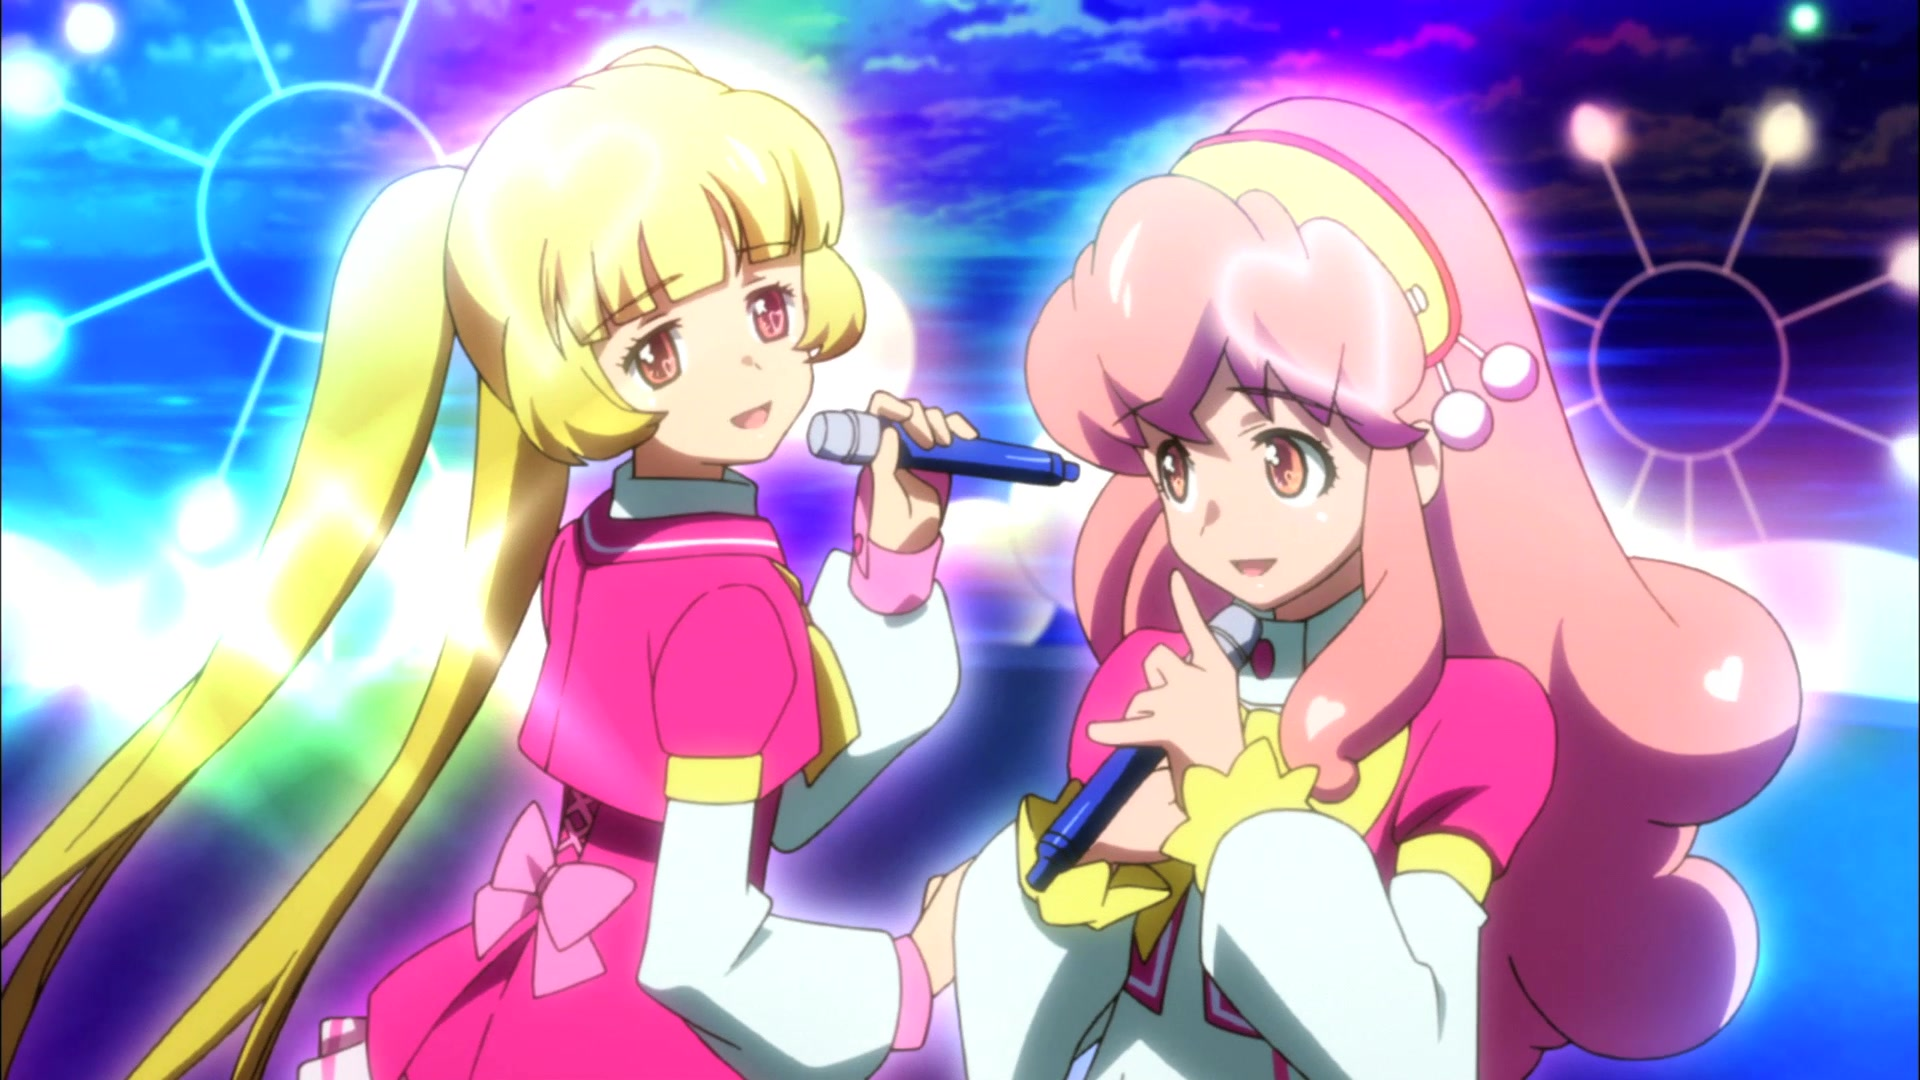 AKB0048: next stage Episode 1, The Young Girls' Trial